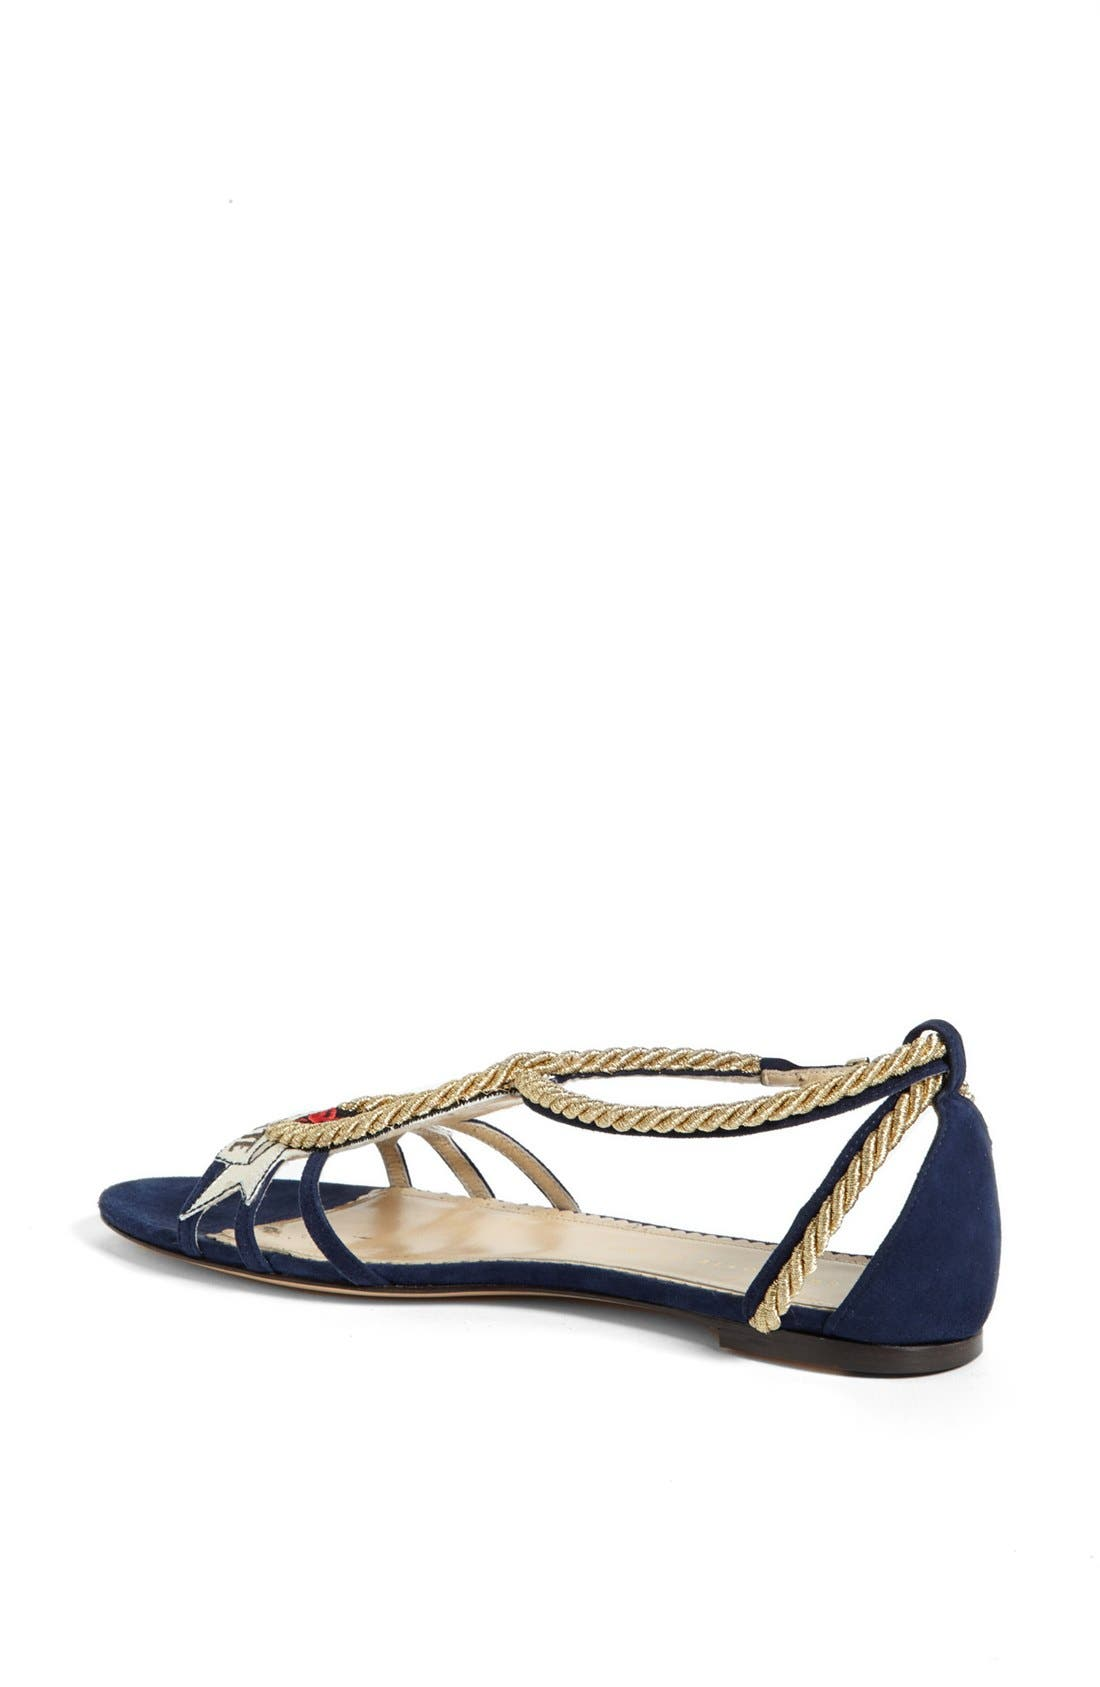 Alternate Image 2  - Charlotte Olympia 'Ahoy Sailor' Sandal